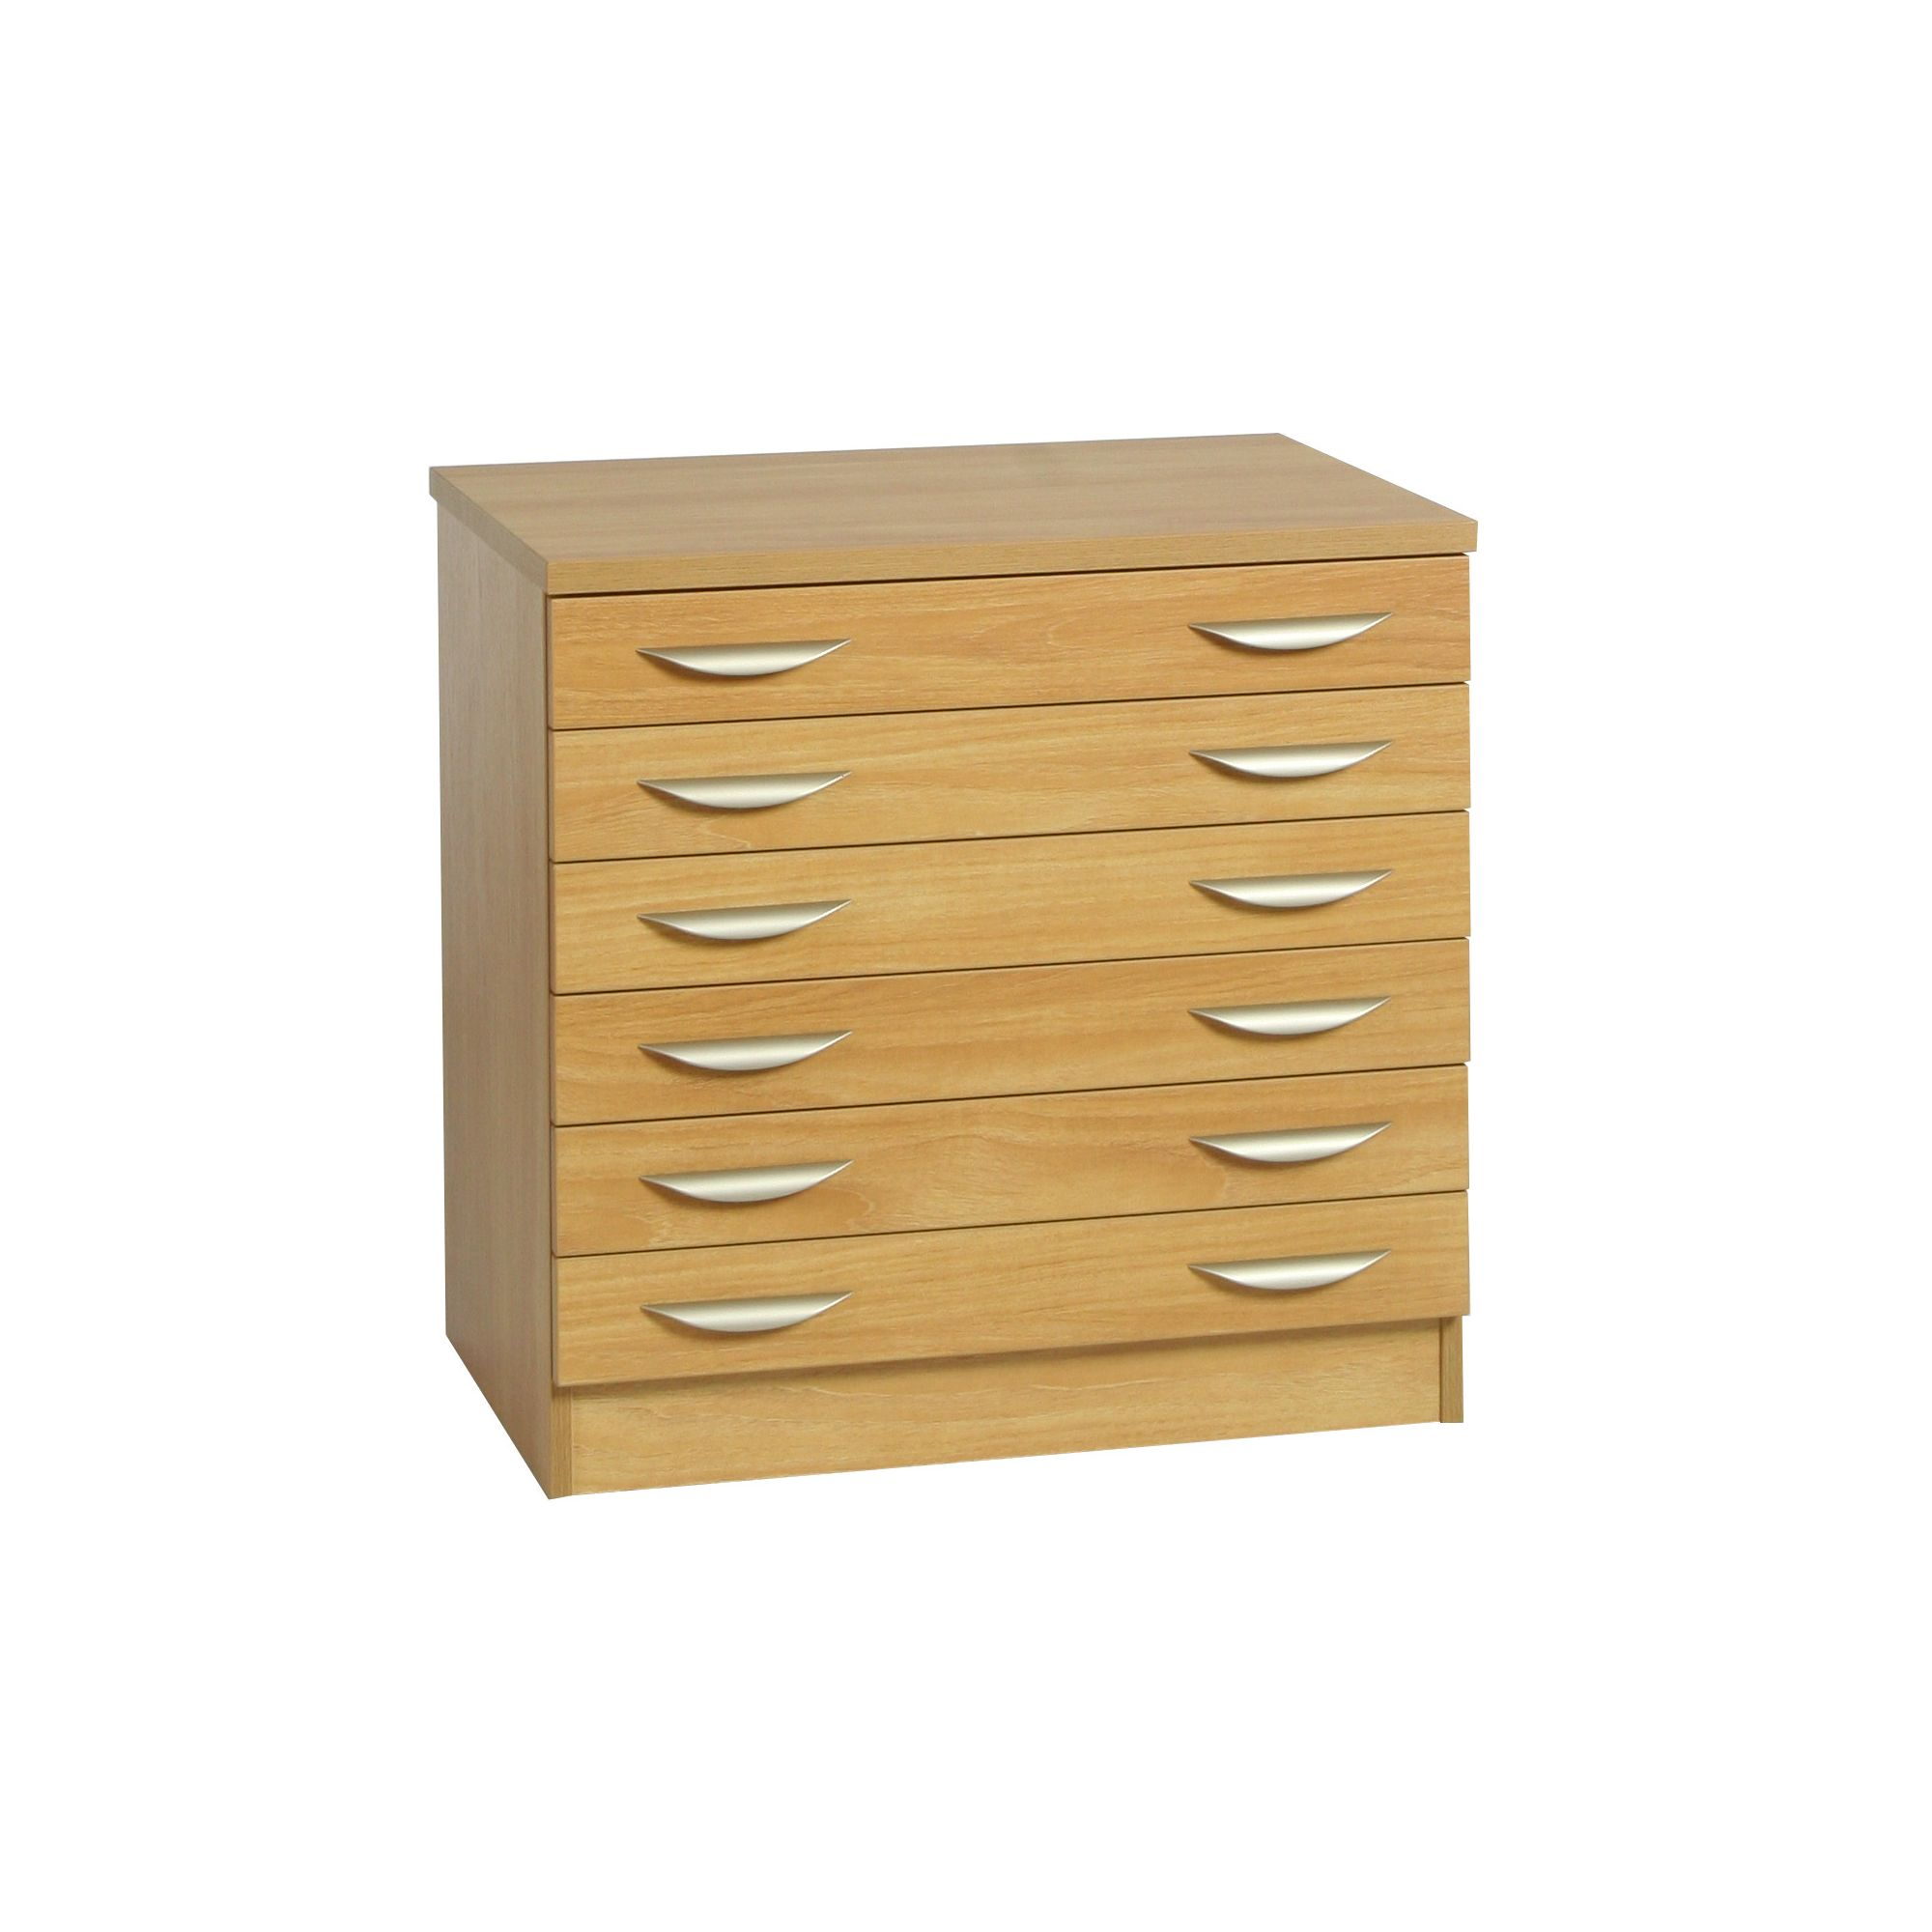 R White Cabinets Six Drawer Wooden Unit - Beech at Tescos Direct